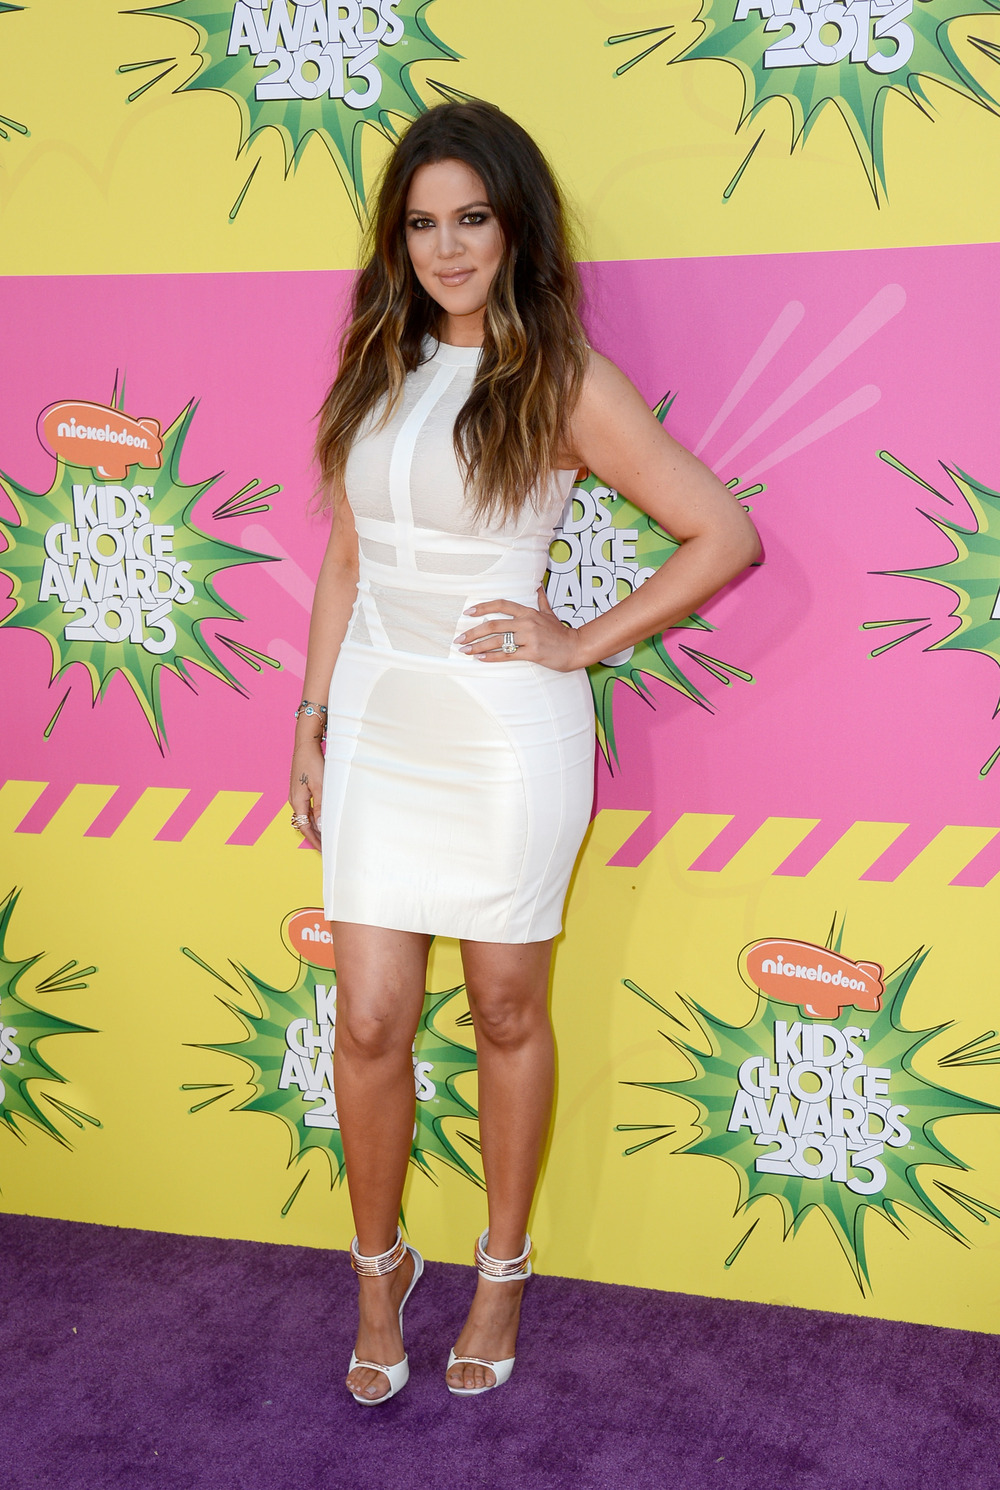 Khloe Kardashian Shares Secrets to Slim Figure — And Her Guilty Pleasures!